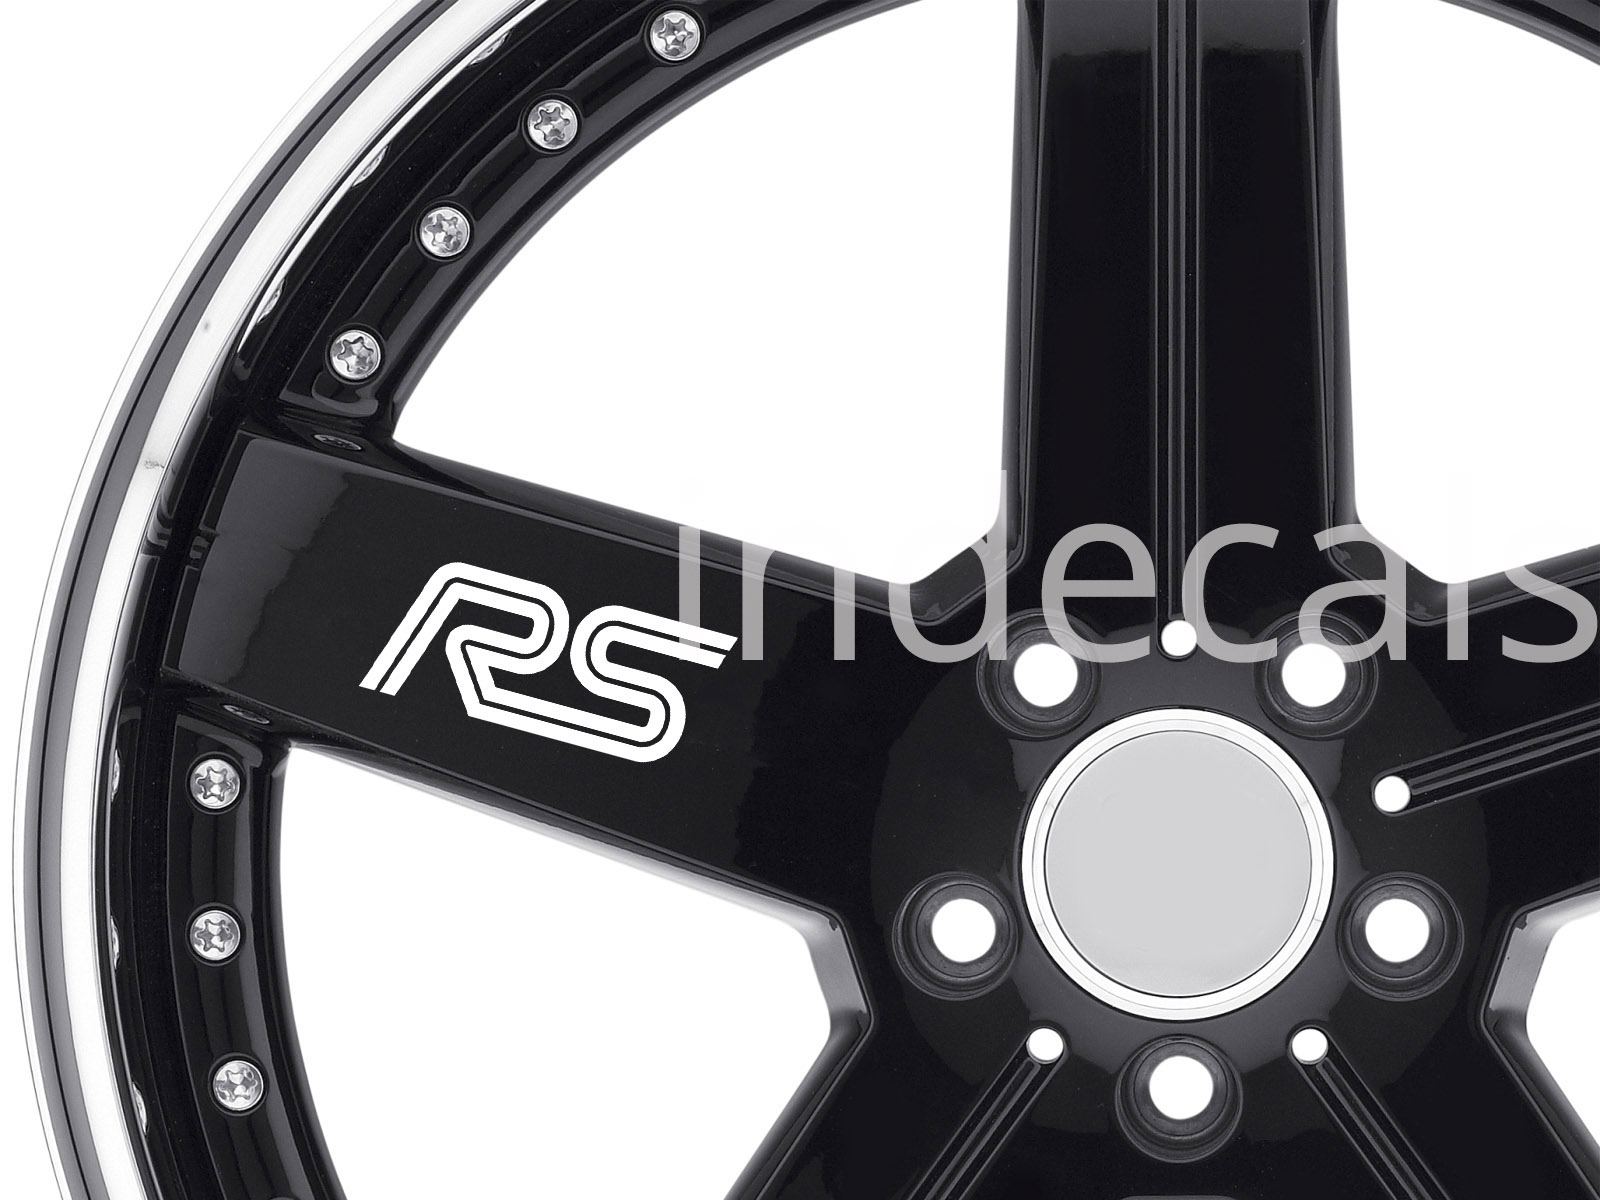 6 x Ford RS Stickers for Wheels - White